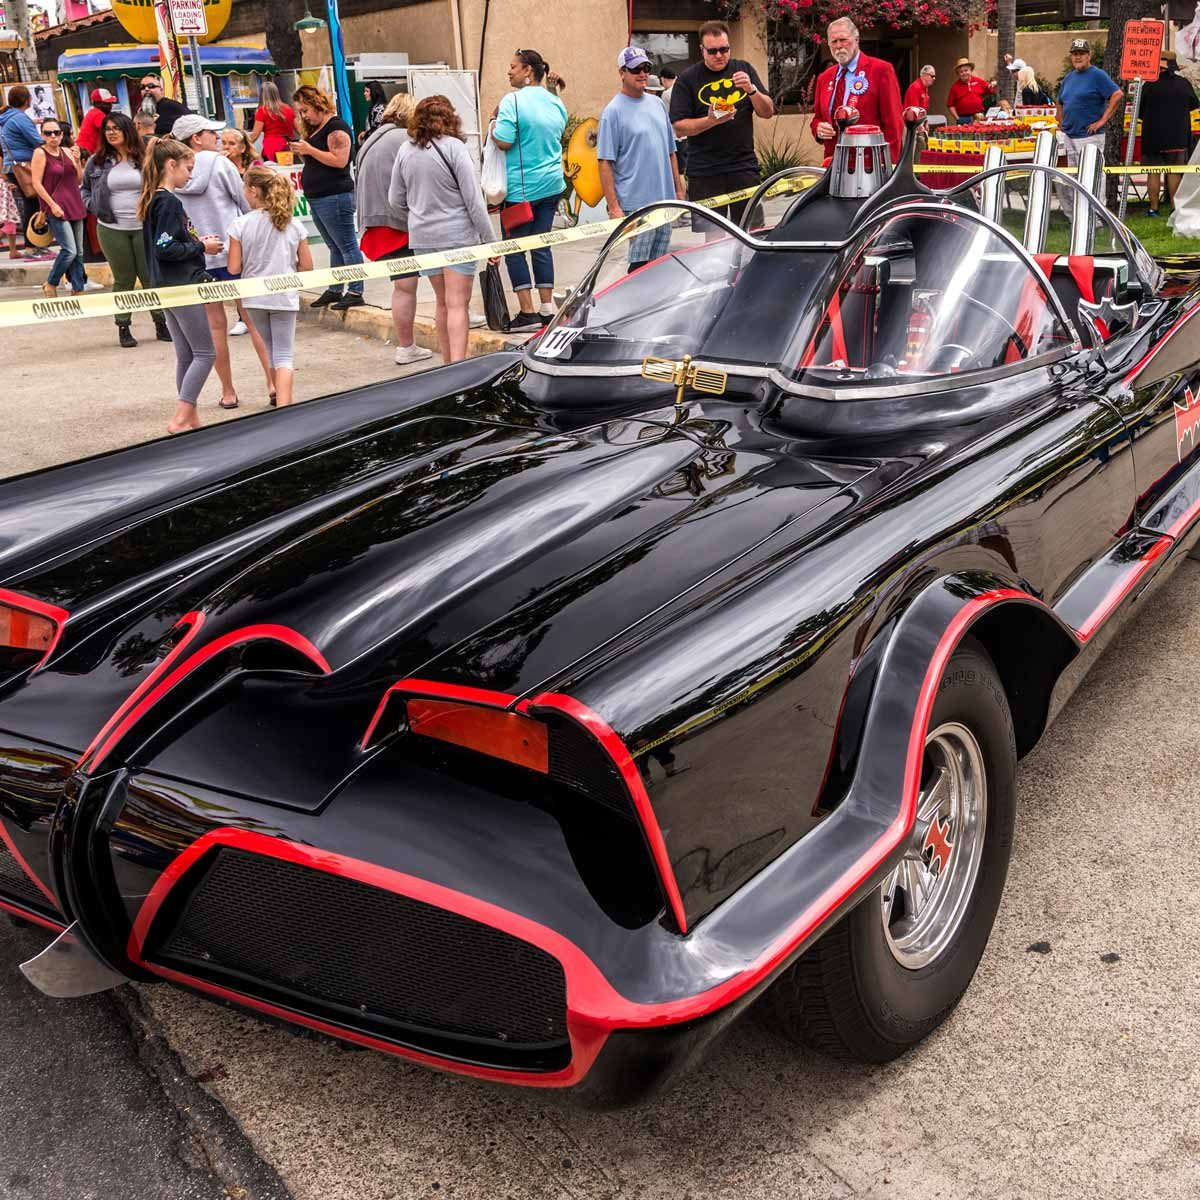 Batmobile-1955-Lincoln-Futura